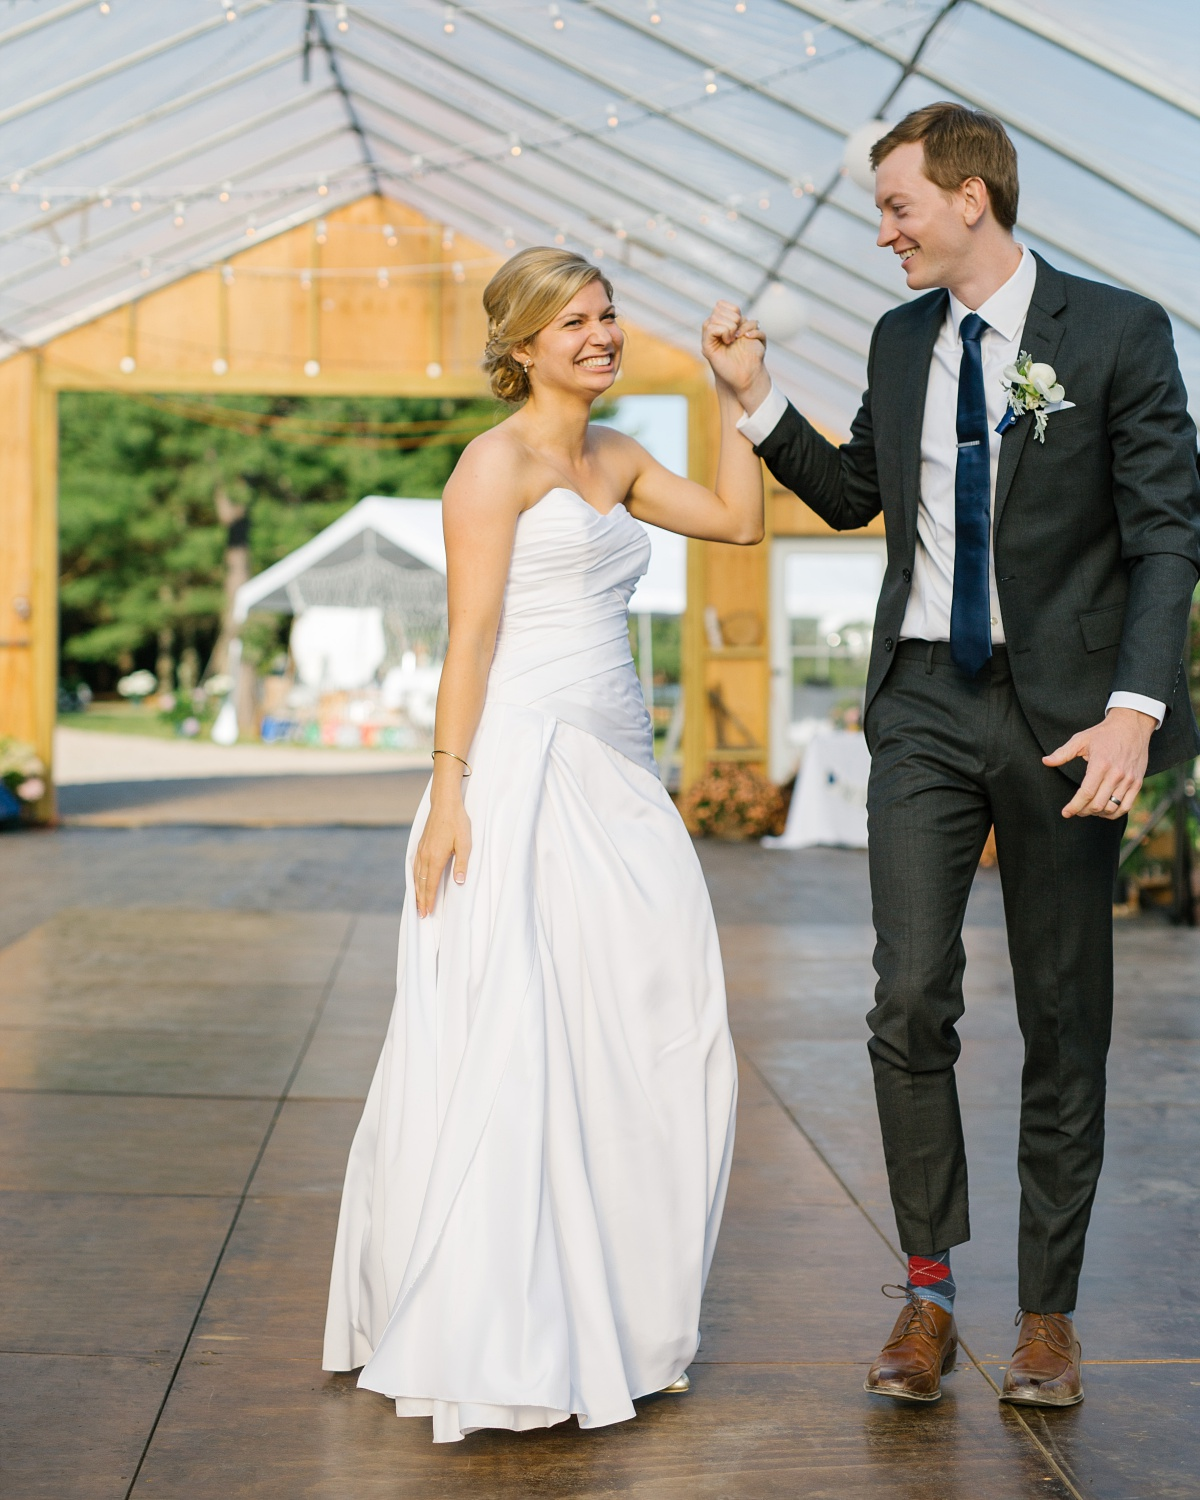 Bride and groom smile and dance at family barn wedding in Rhode Island